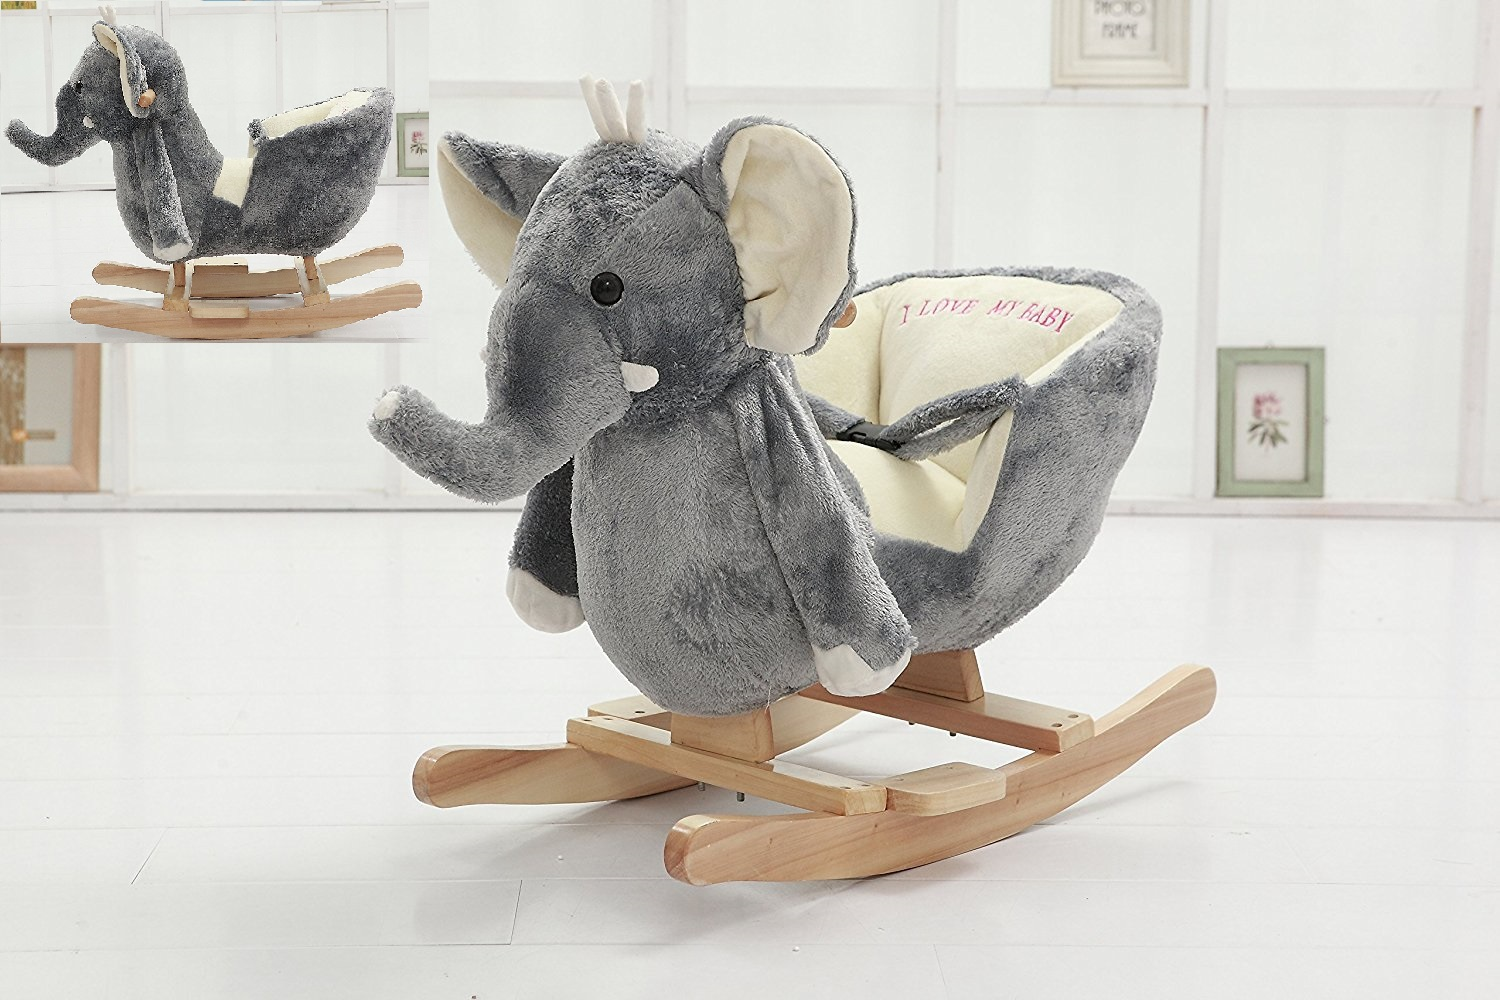 Plush Toddler Chair Danybaby Rocking Elephant Chair Stuffed Plush Toddler